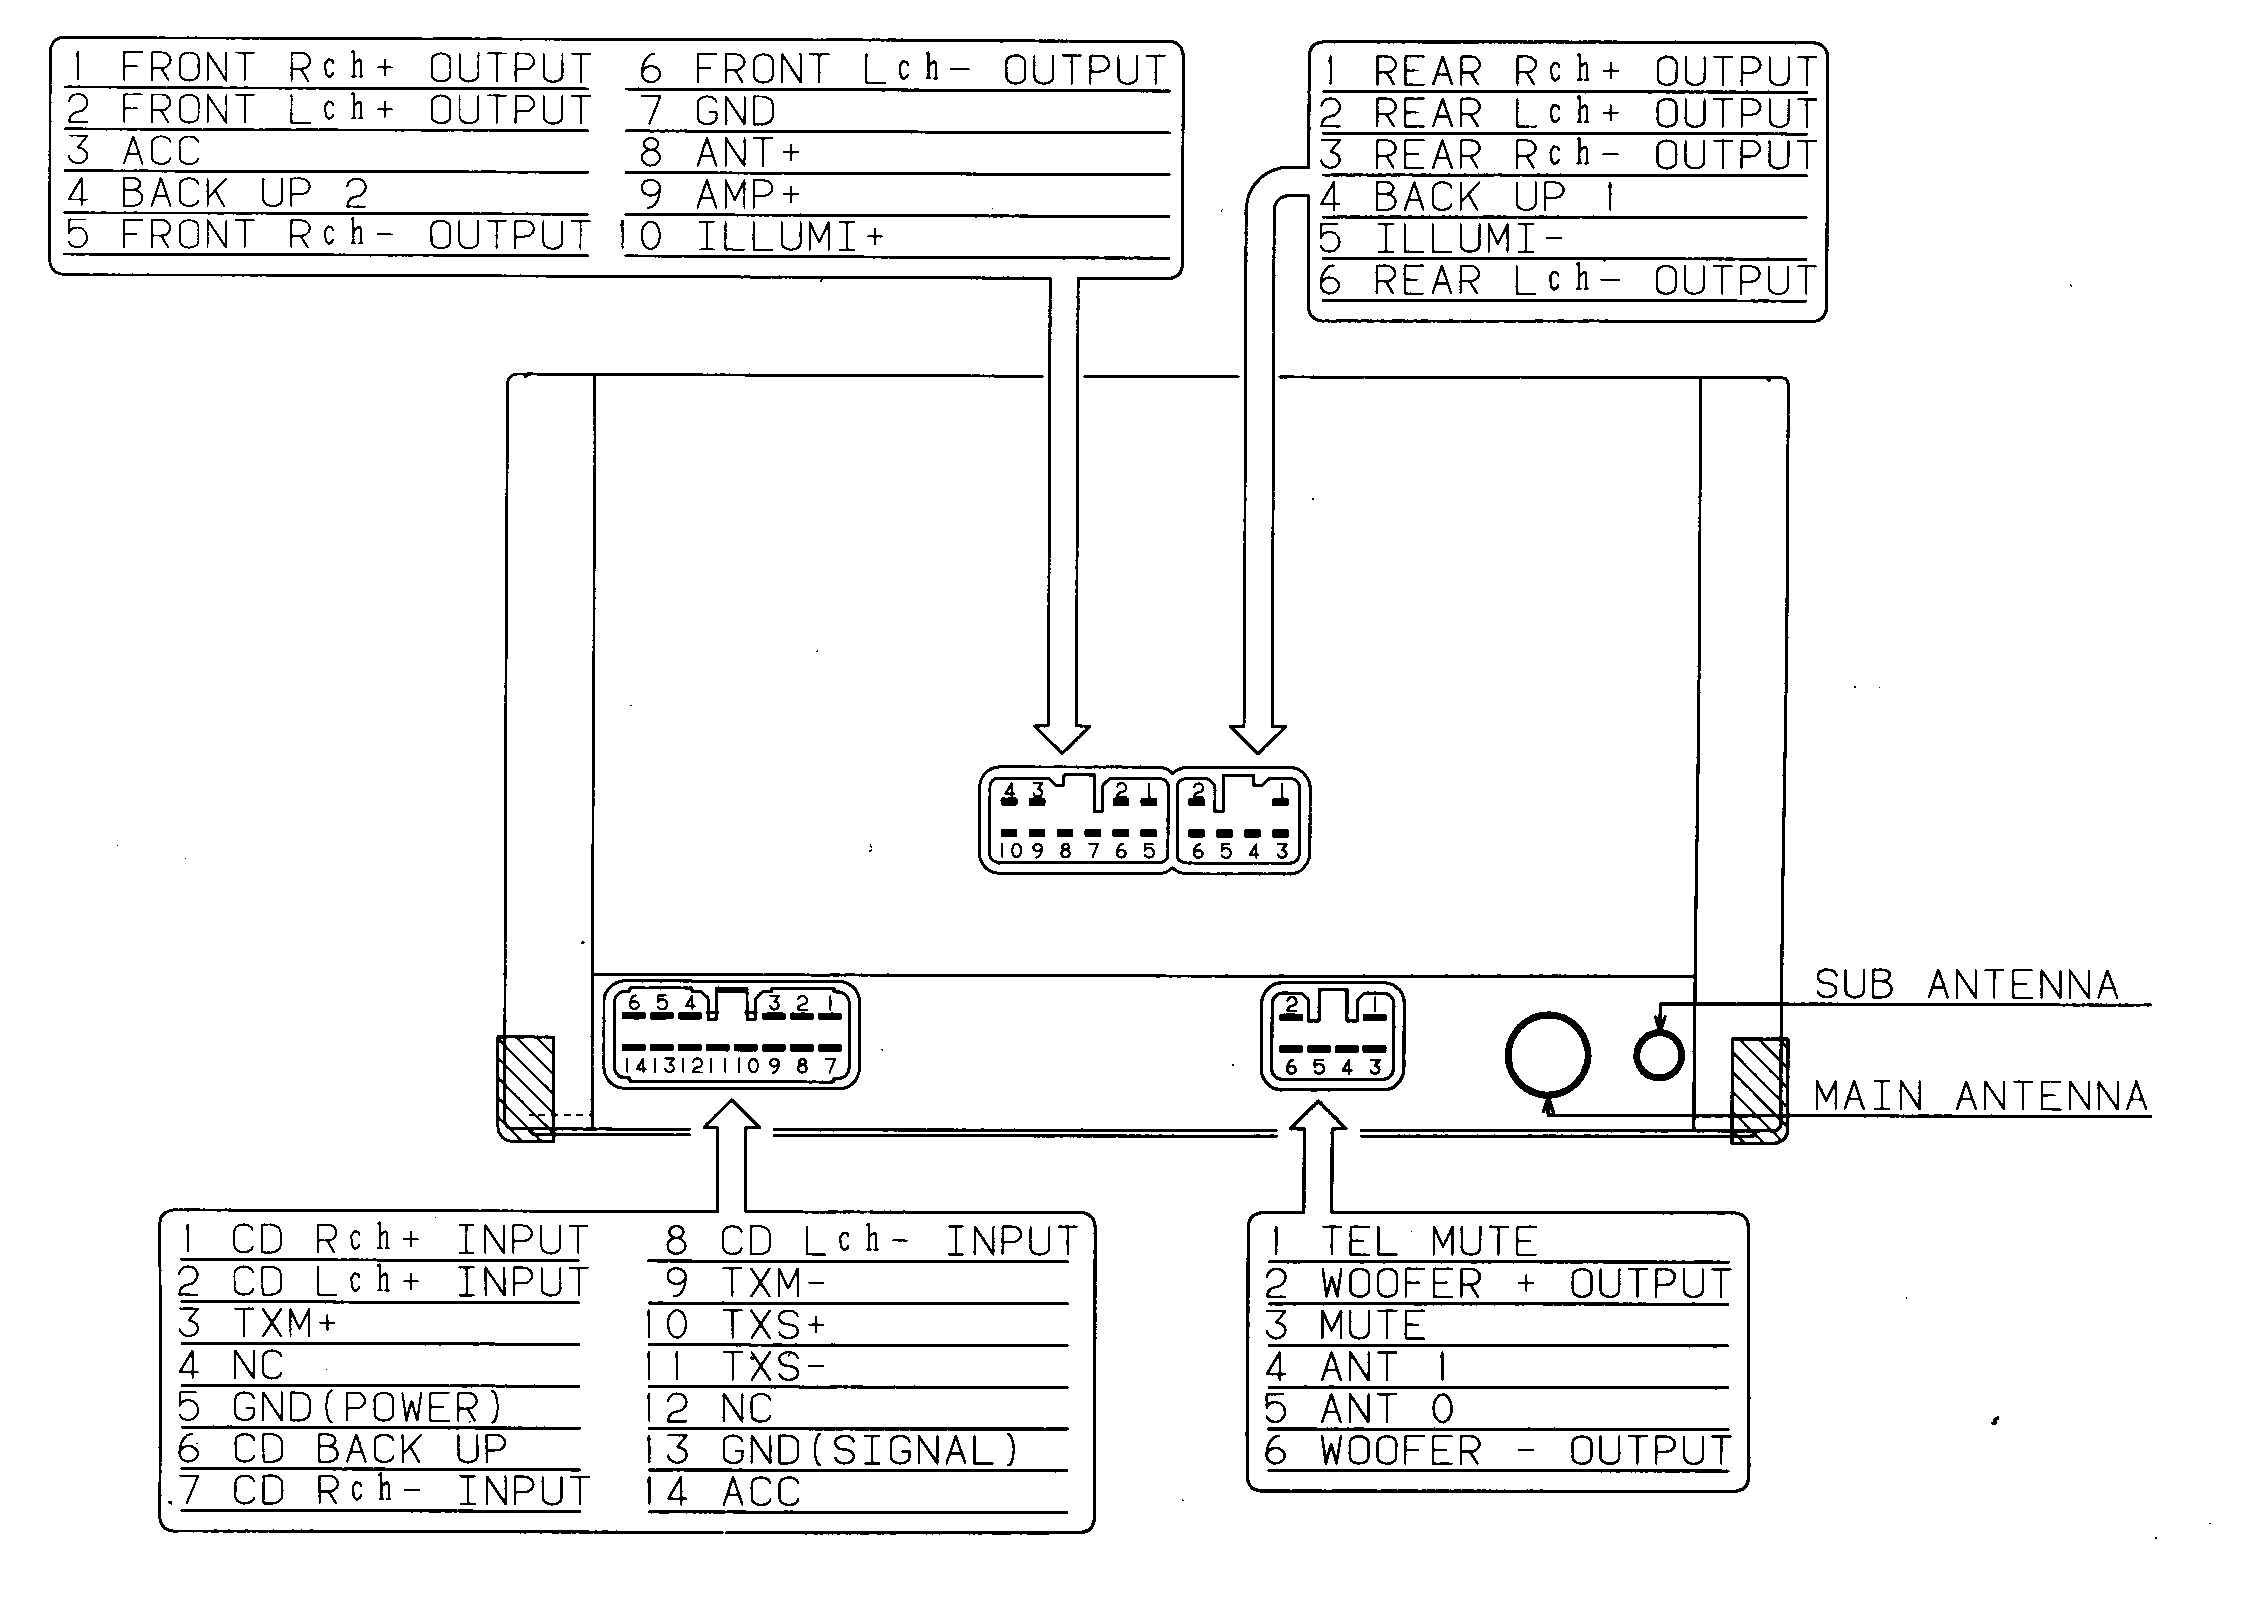 Lexus car stereo wiring diagram harness pinout connector wire lexus rx330 radio wiring diagram lexus rx330 parts diagram 2002 Lexus RX300 Interior at readyjetset.co